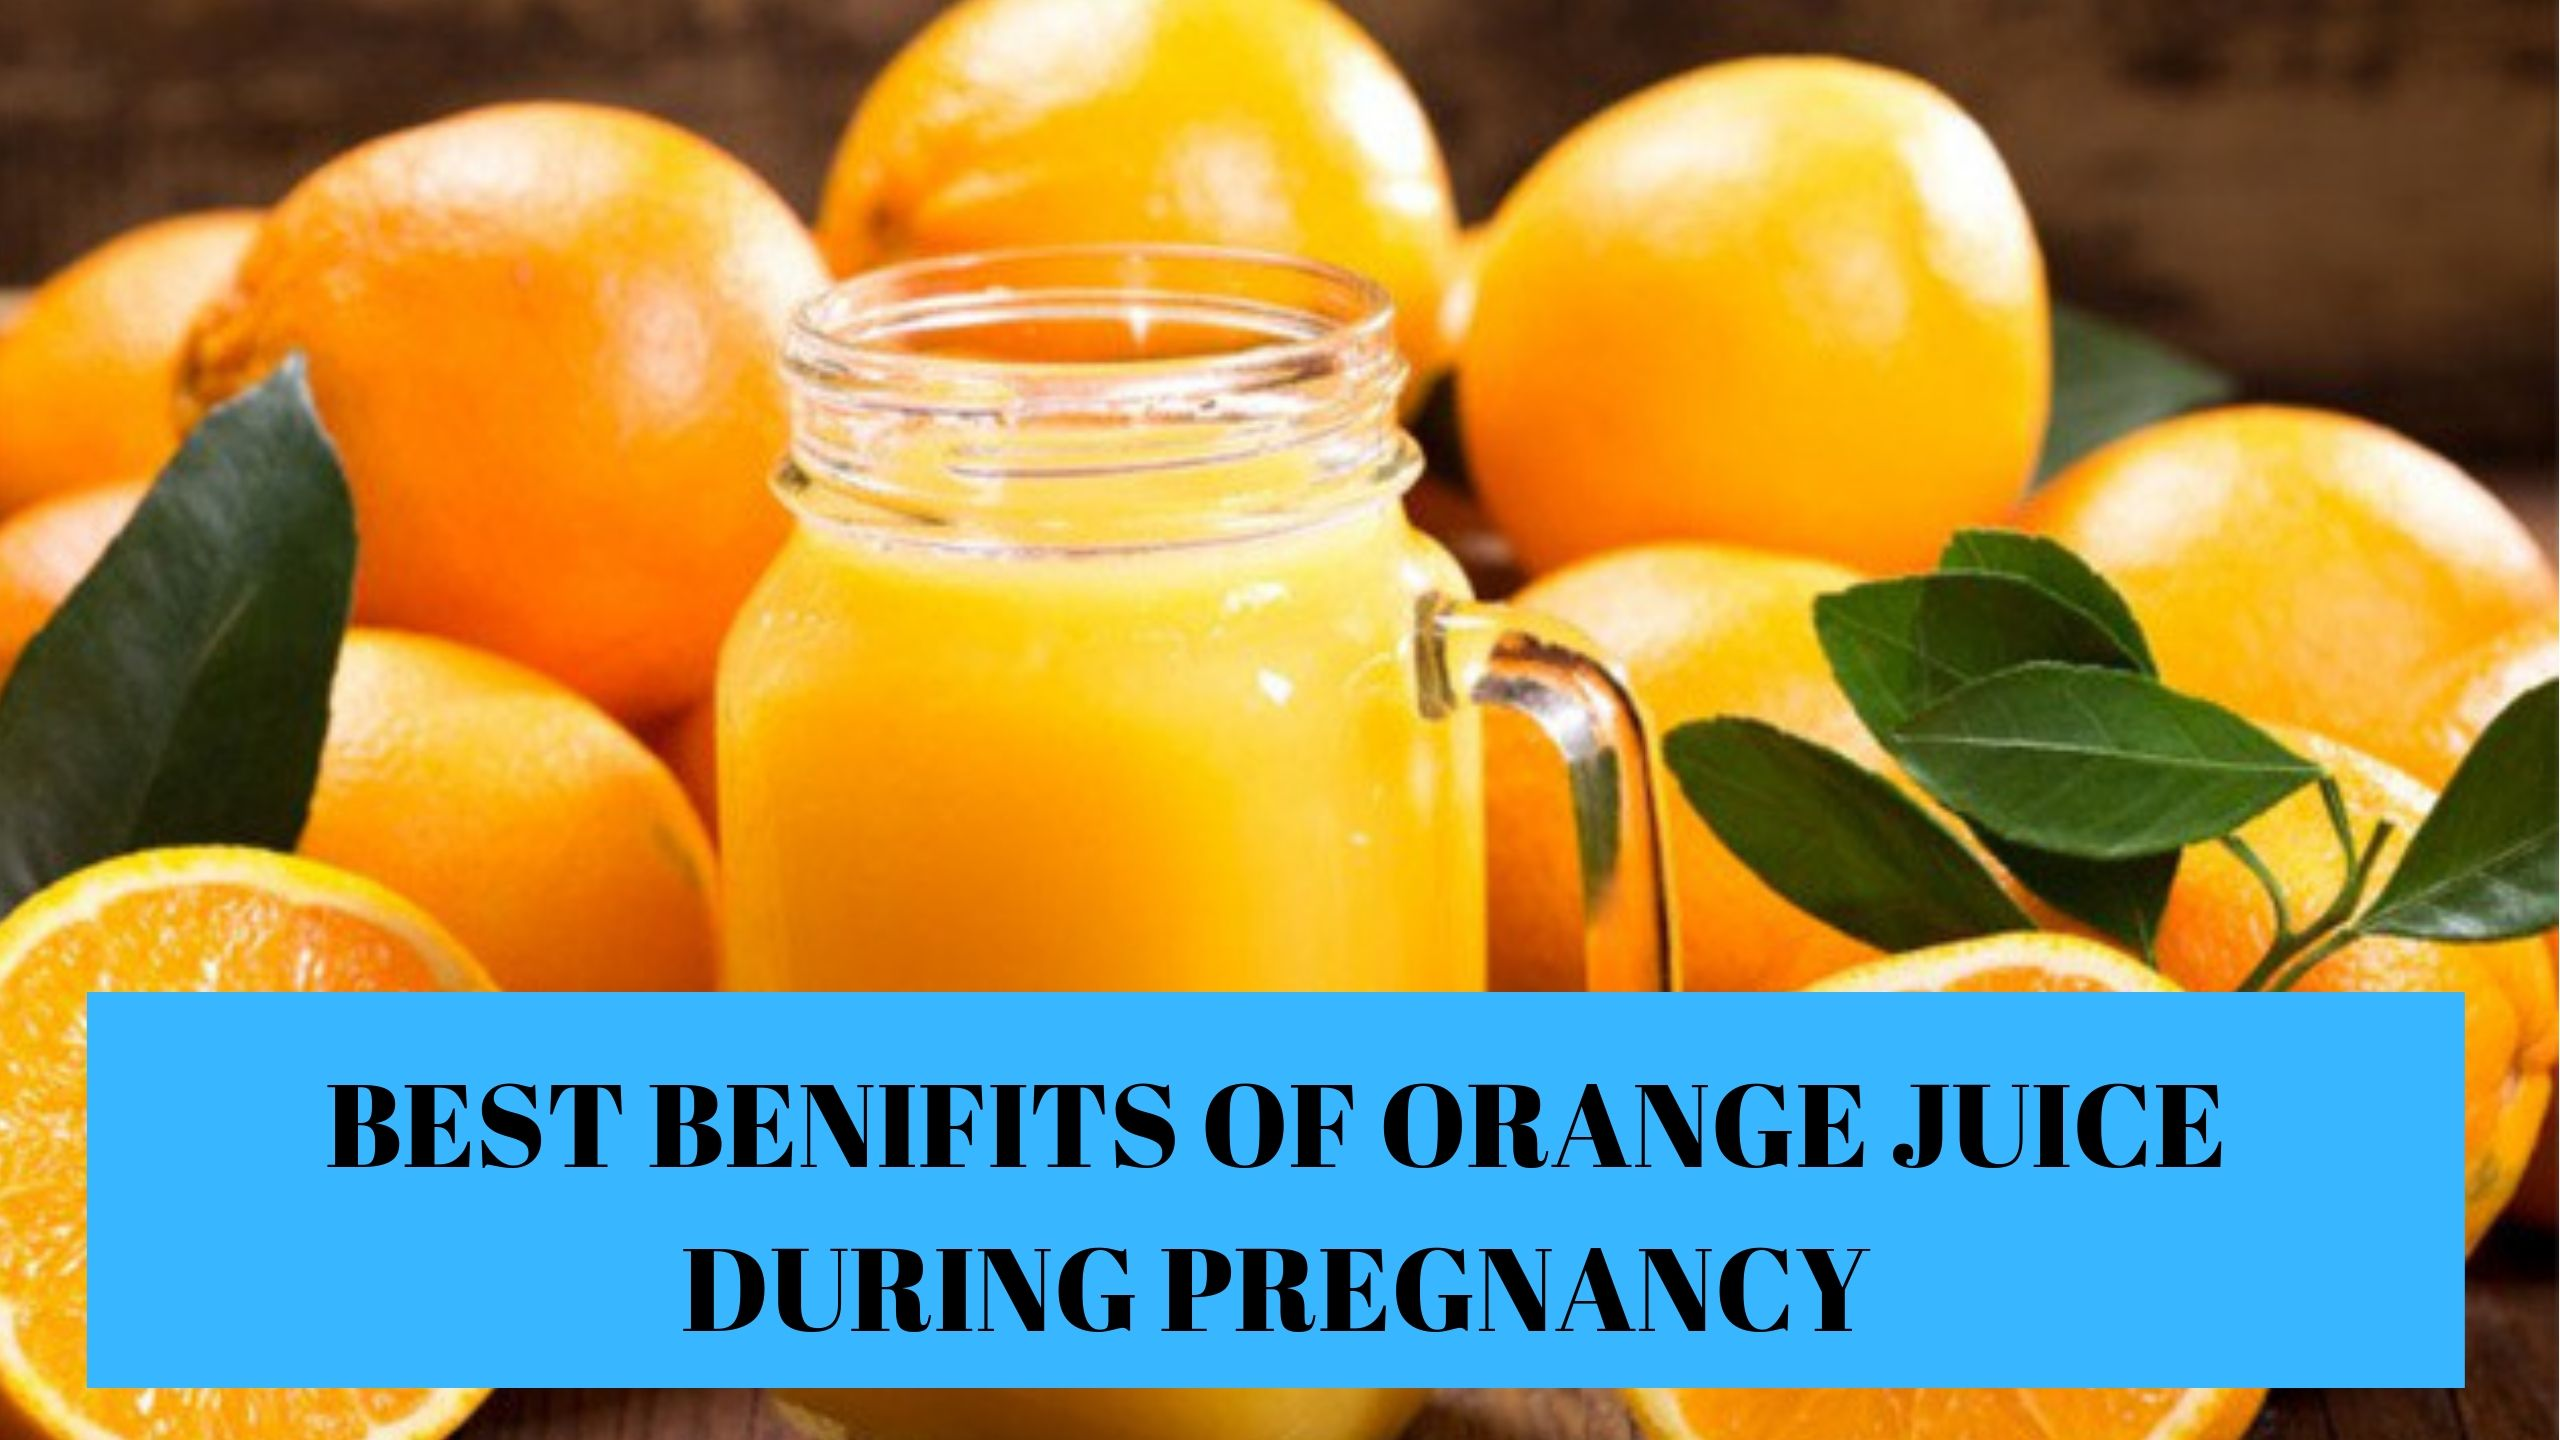 Best benifits of orange juice During Pregnancy